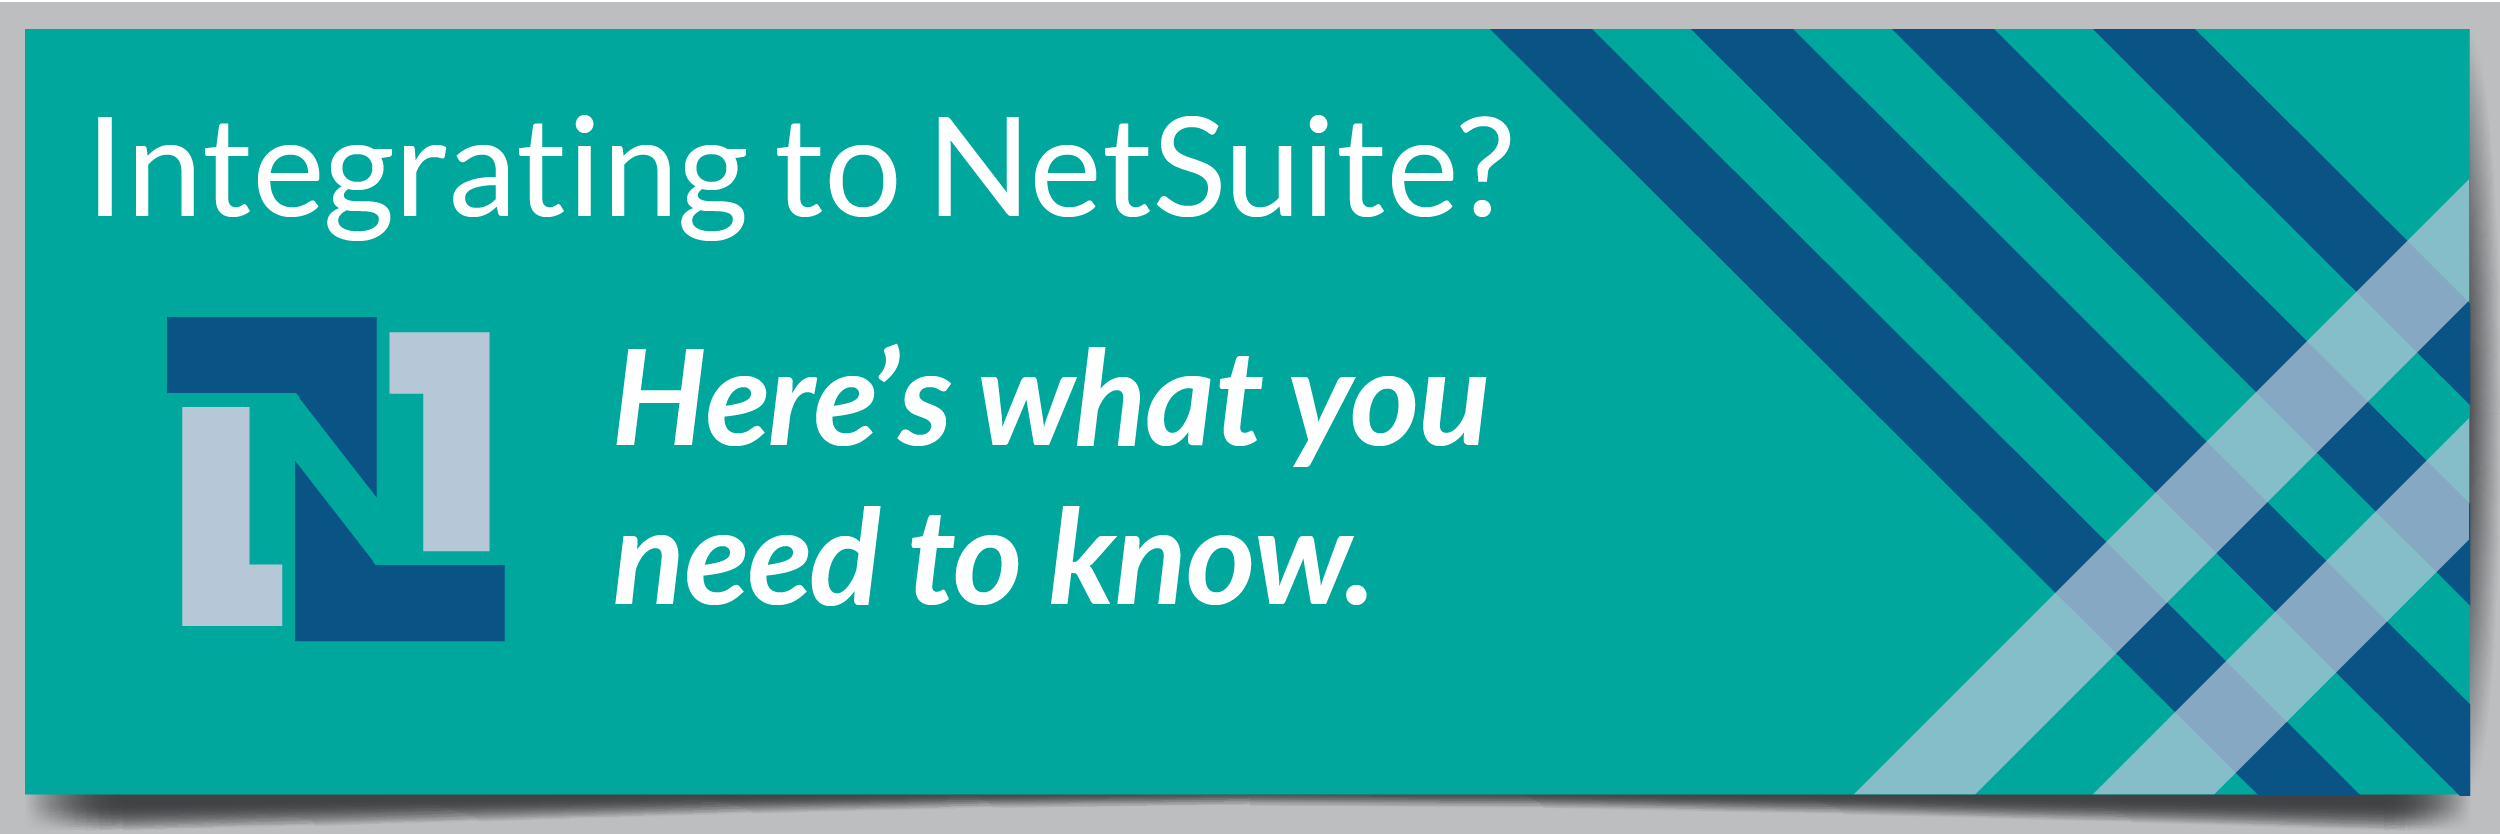 Integrating to Netsuite Social Banners_Blog Banner